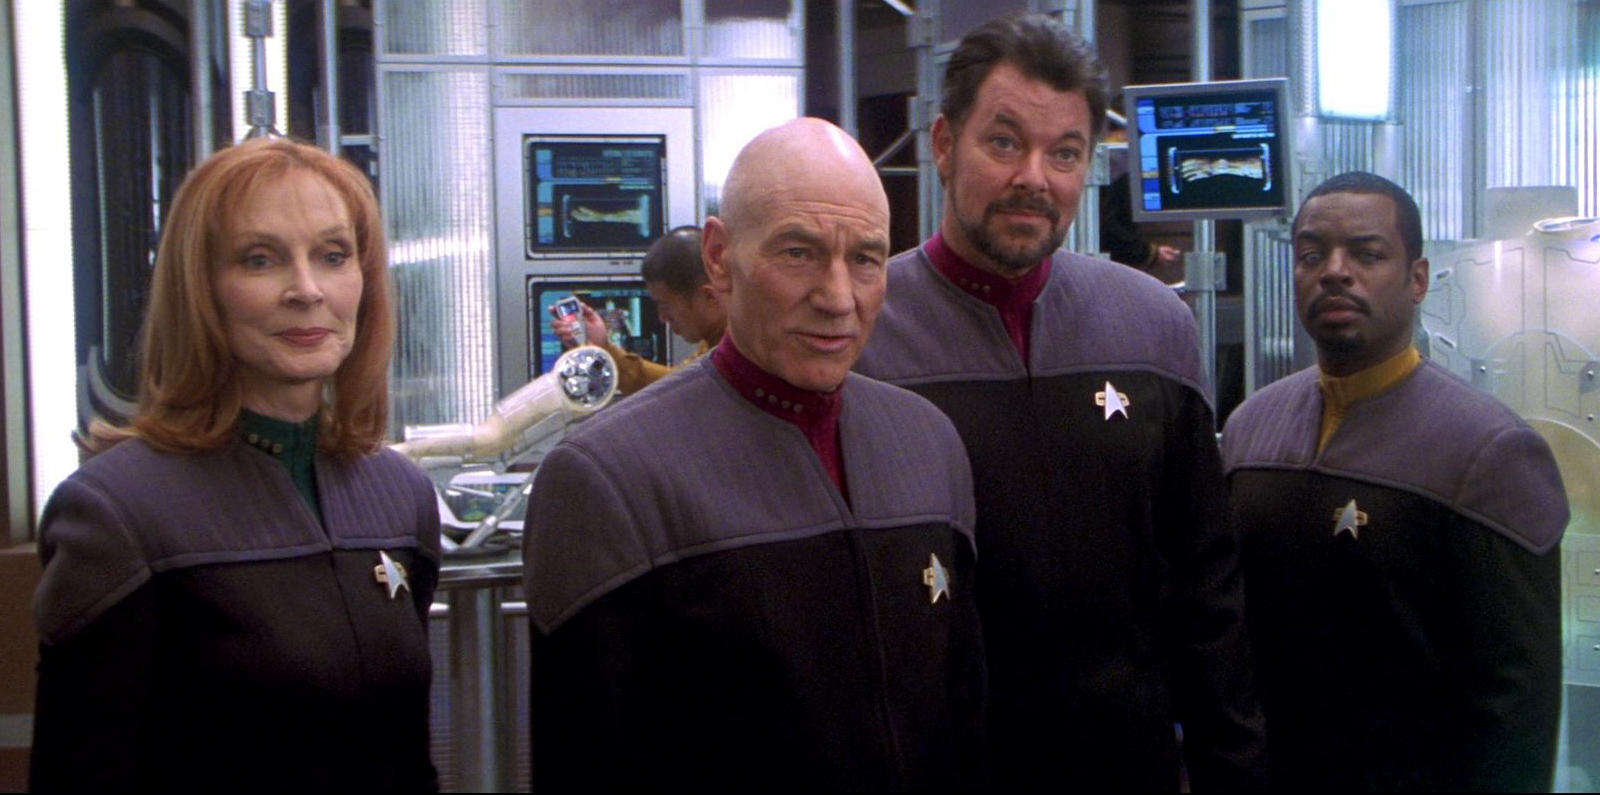 Star Trek Nemesis Uniforms still image  sc 1 st  Reddit & Why are we unable to recreate high quality Star Trek uniforms ...